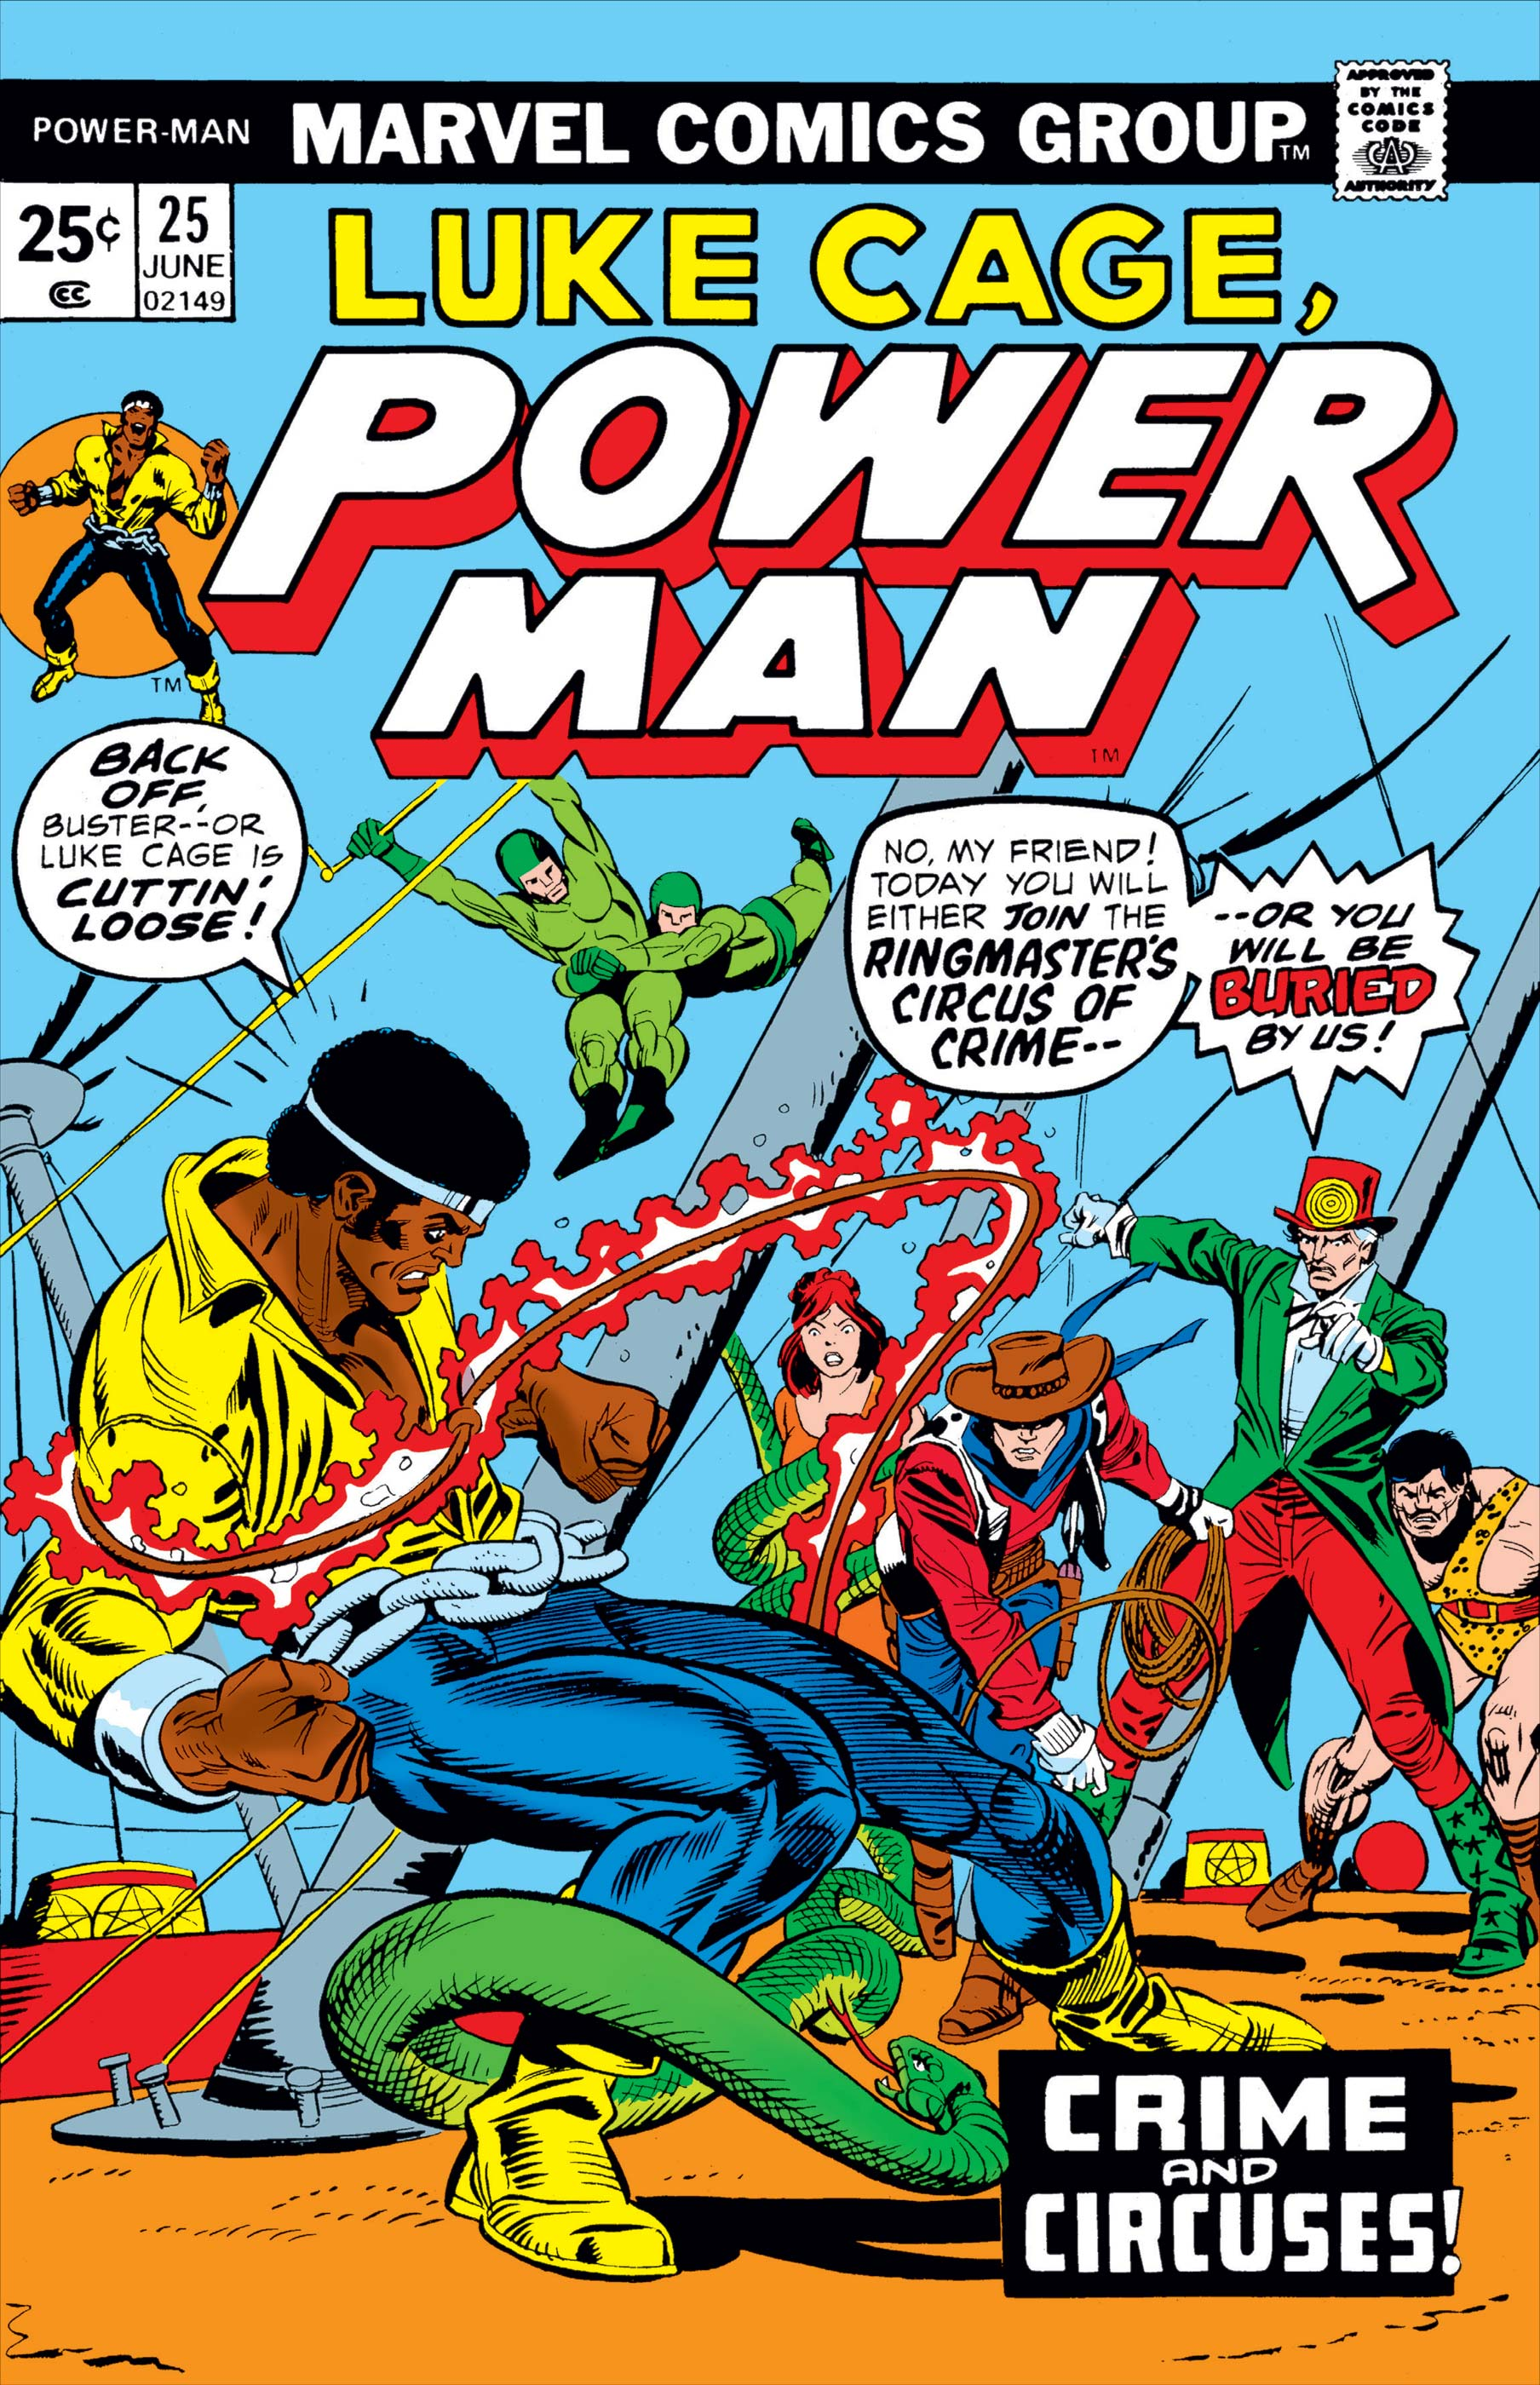 Power Man (1974) #25